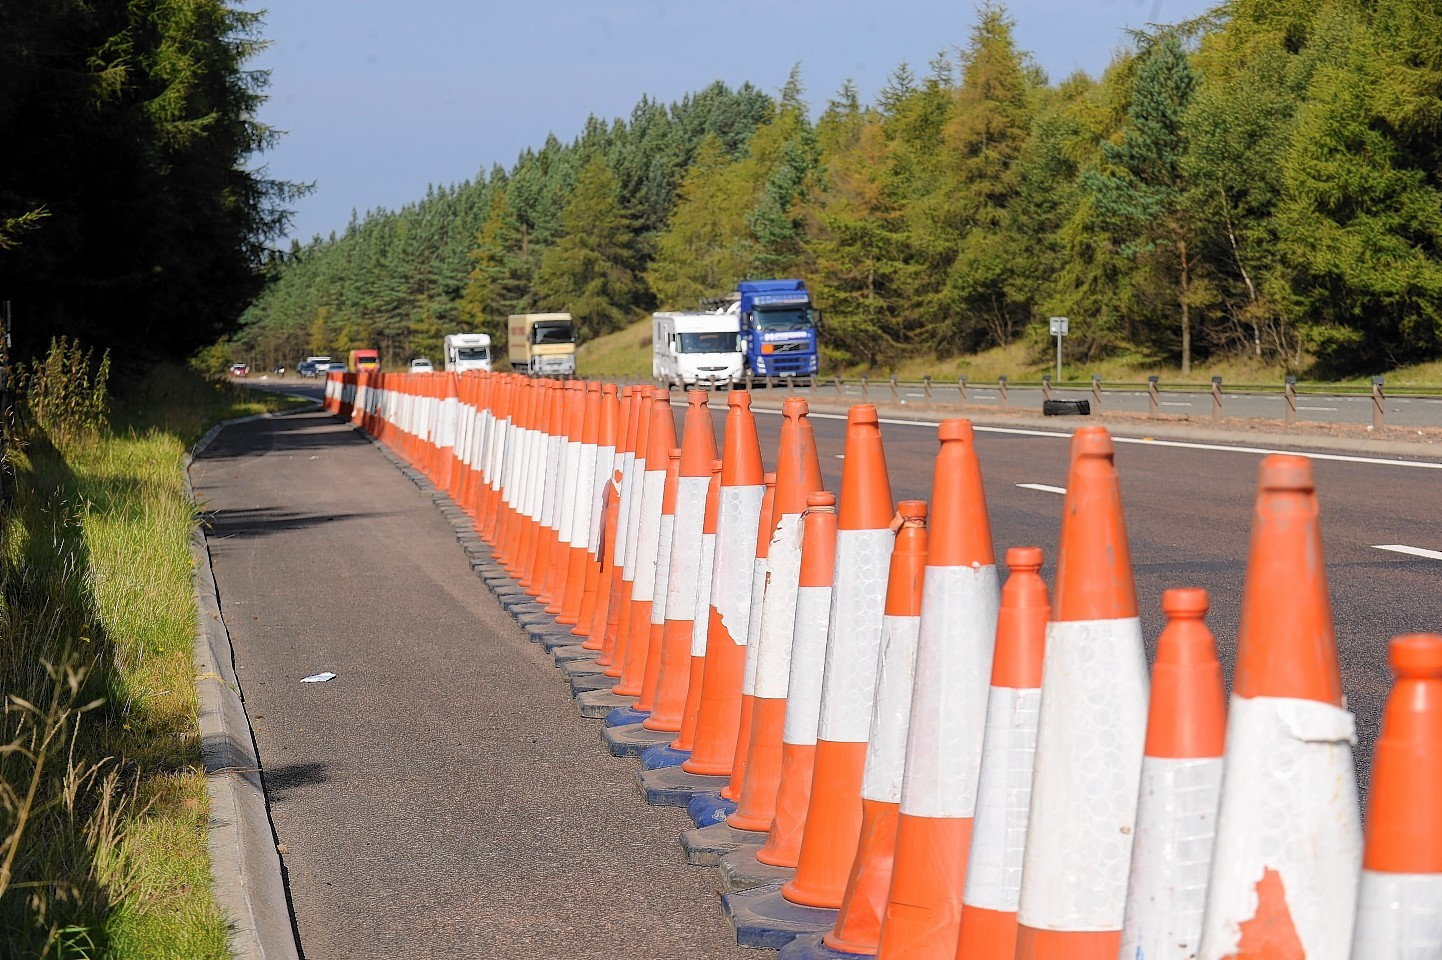 3,200 cones went missing in the last year